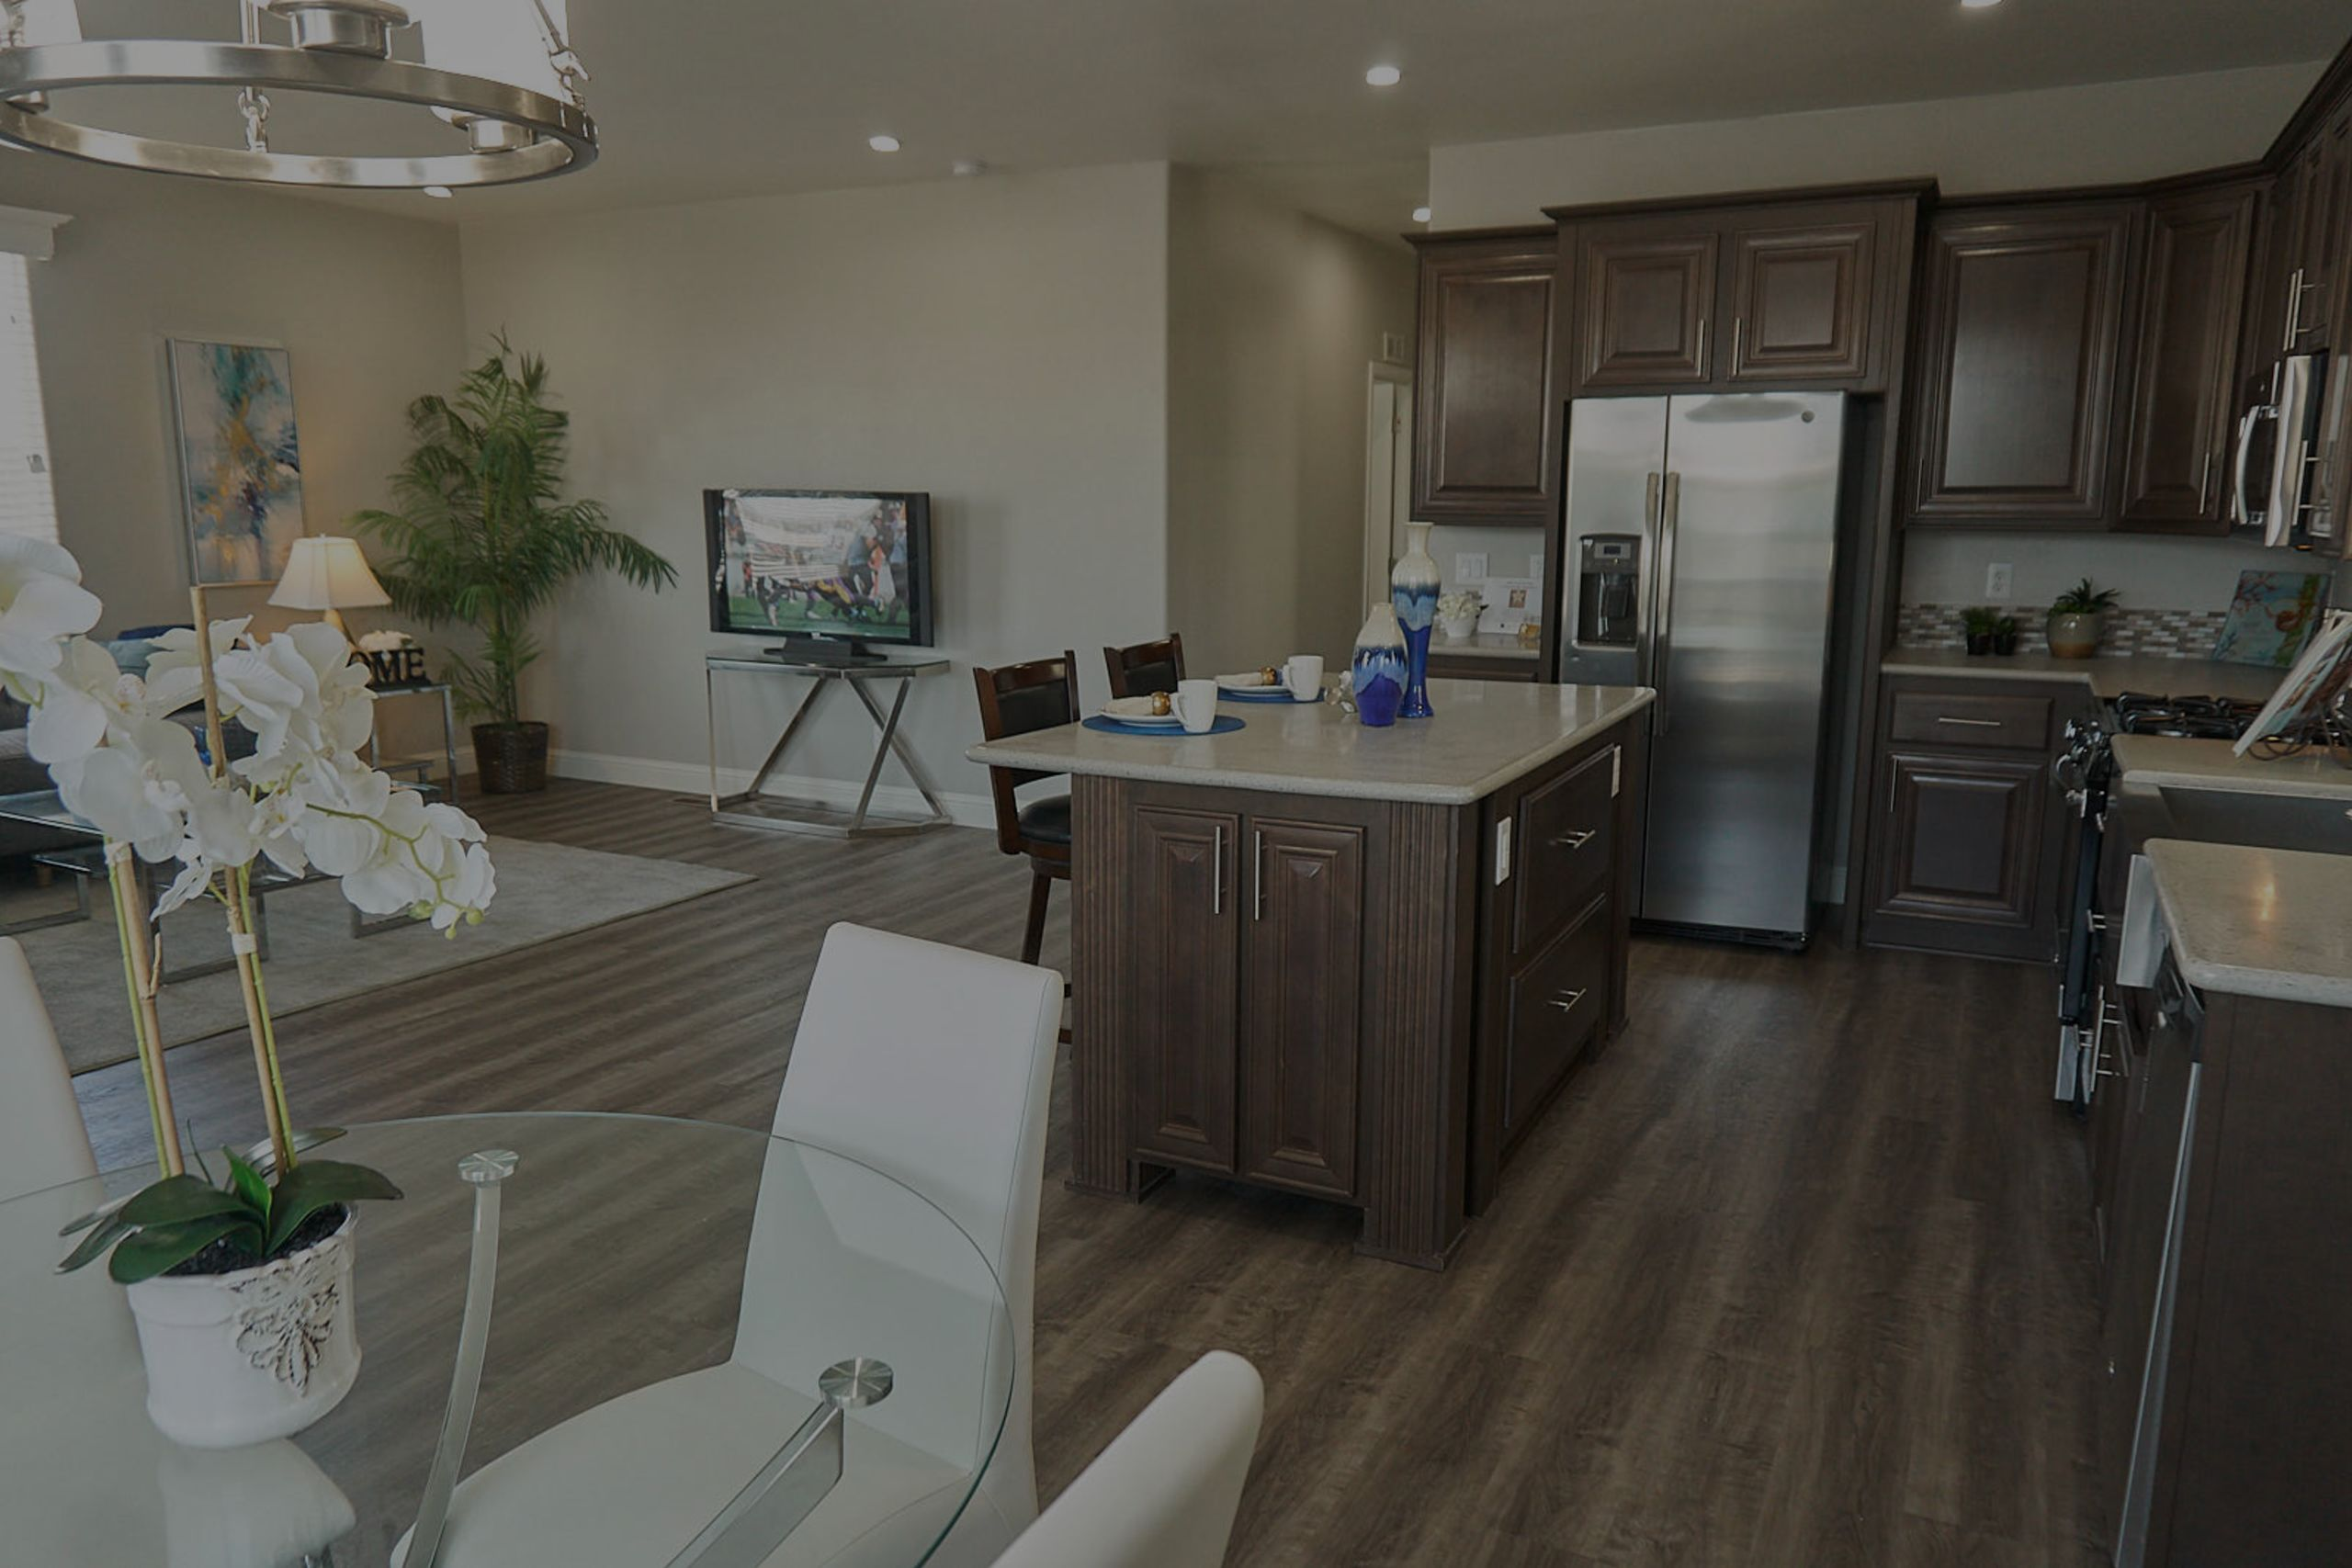 Price Reduction For New Construction Homes at Windward Village!